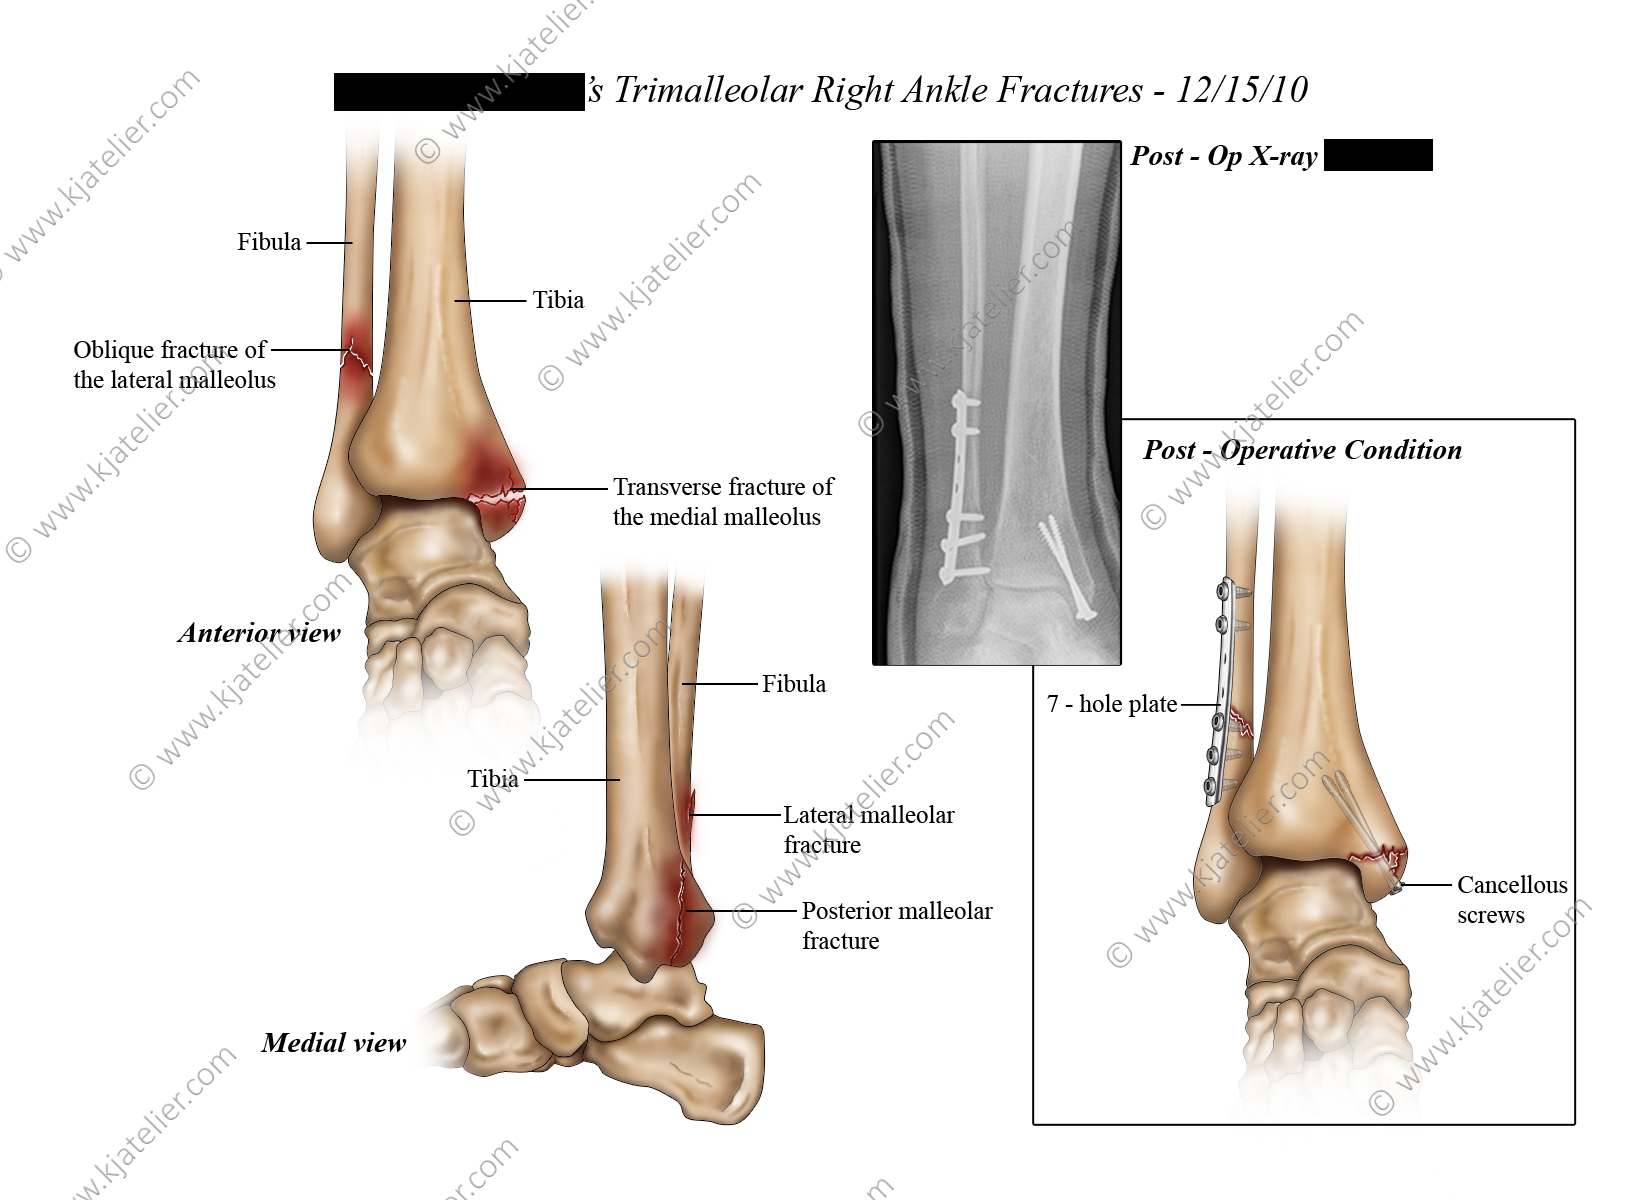 Right Ankle Fractures